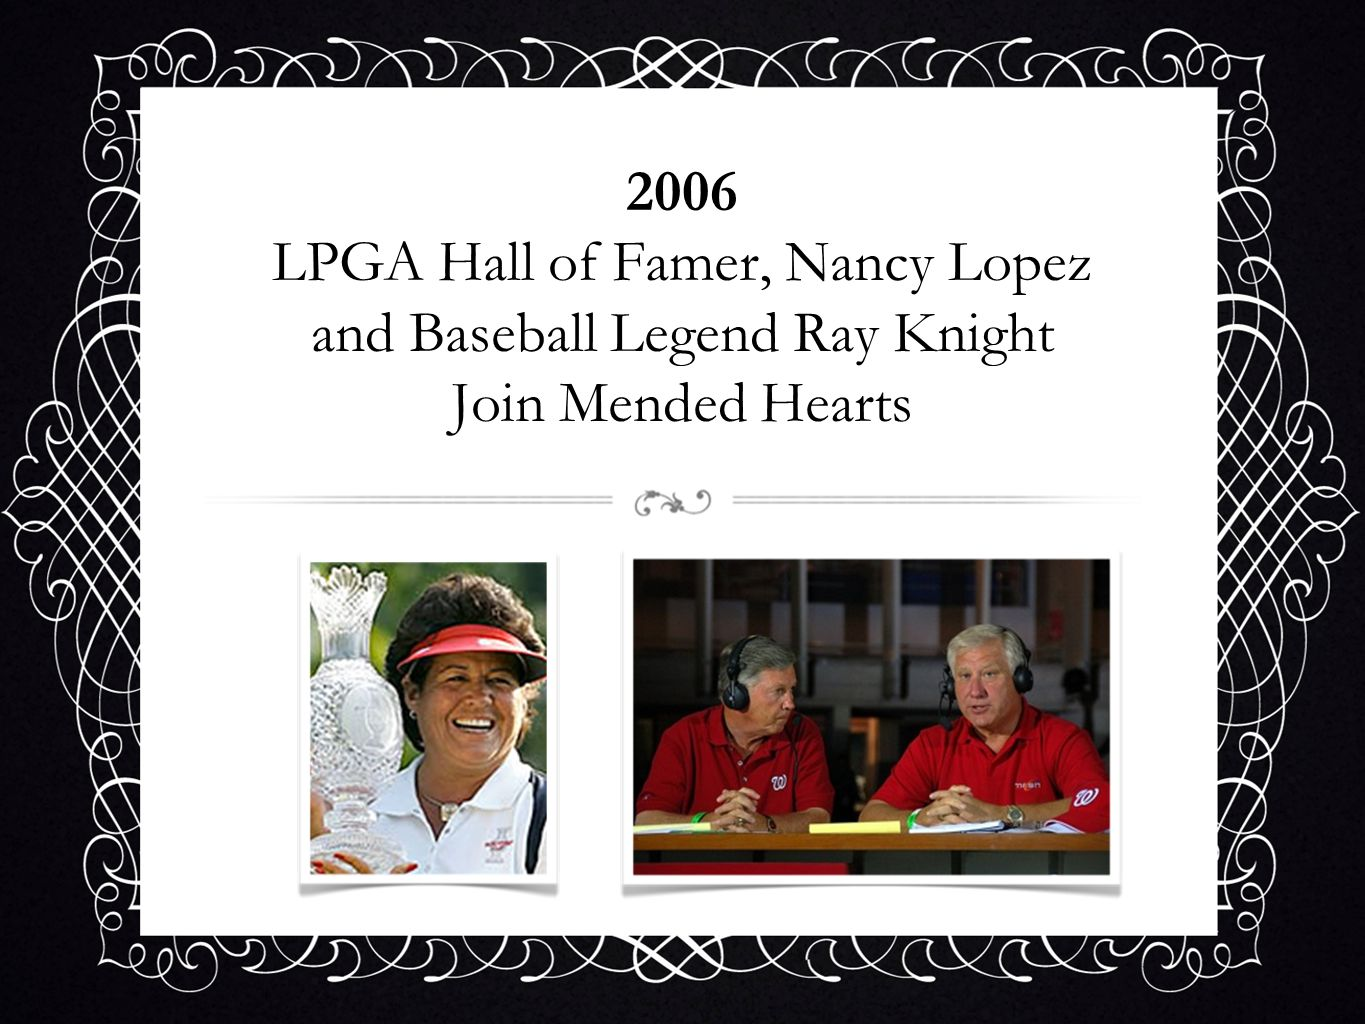 2006 LPGA Hall of Famer, Nancy Lopez and Baseball Legend Ray Knight Join Mended Hearts